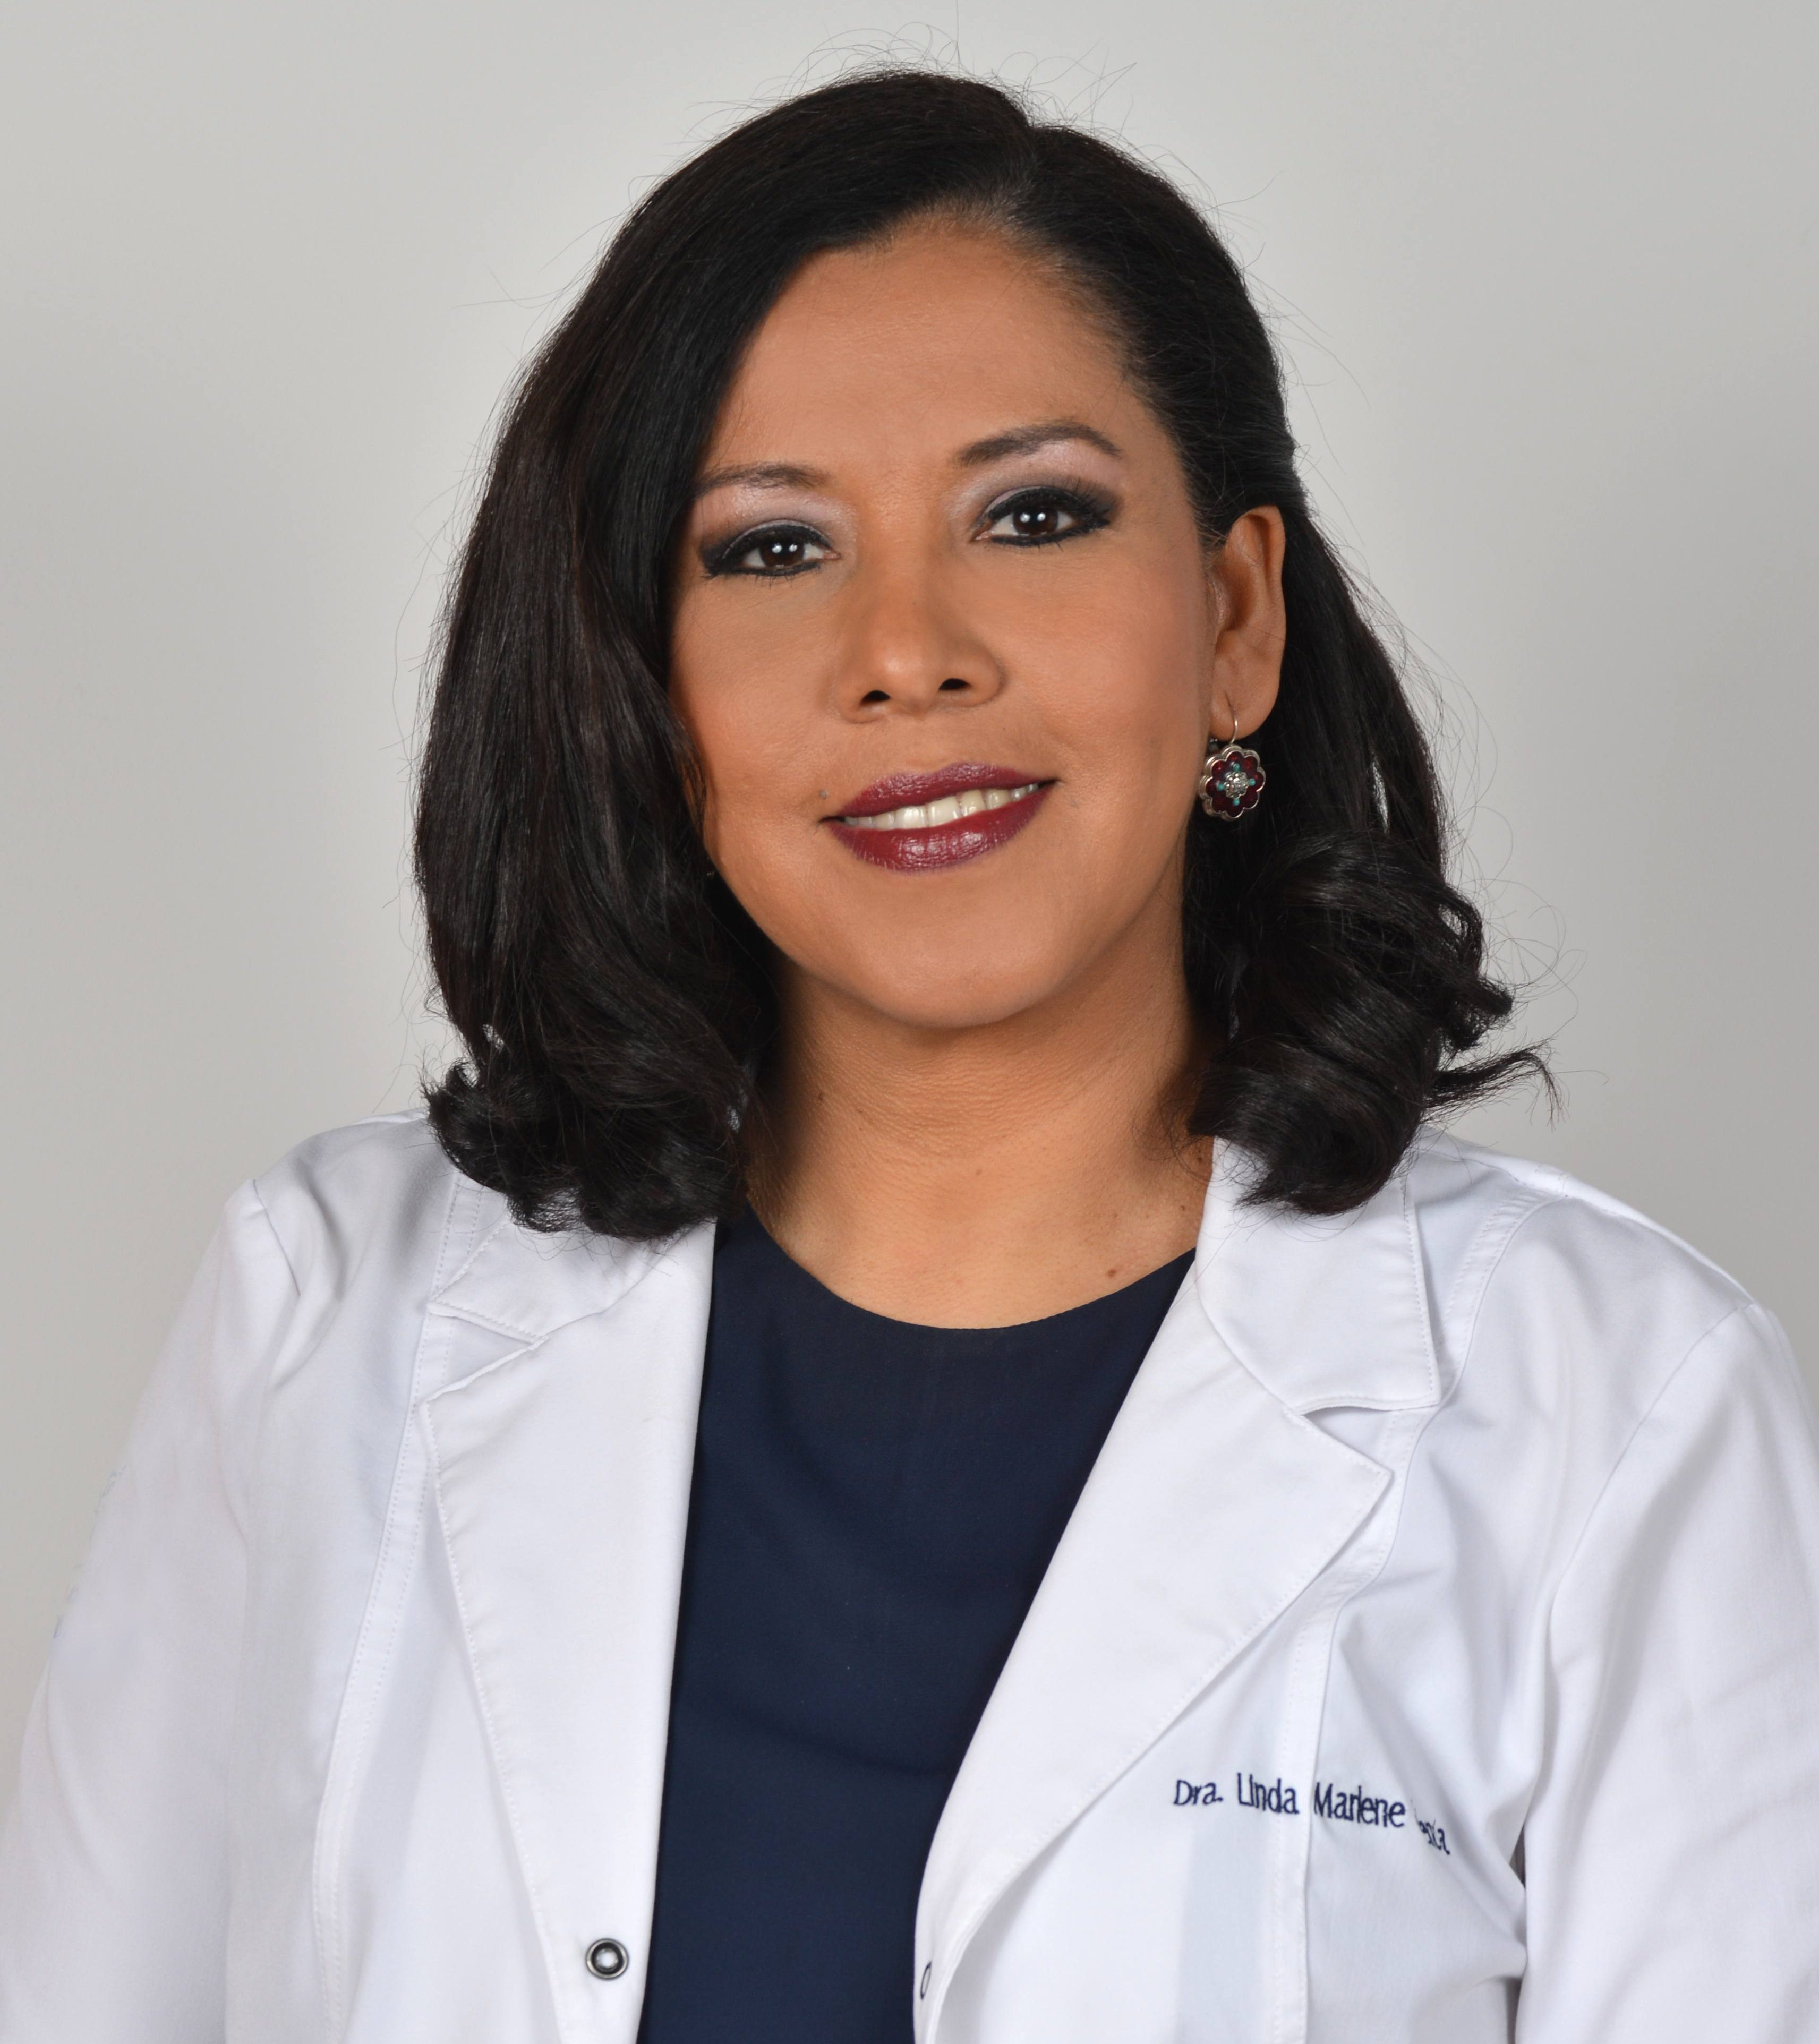 Photo: Dr. Linda Valencia